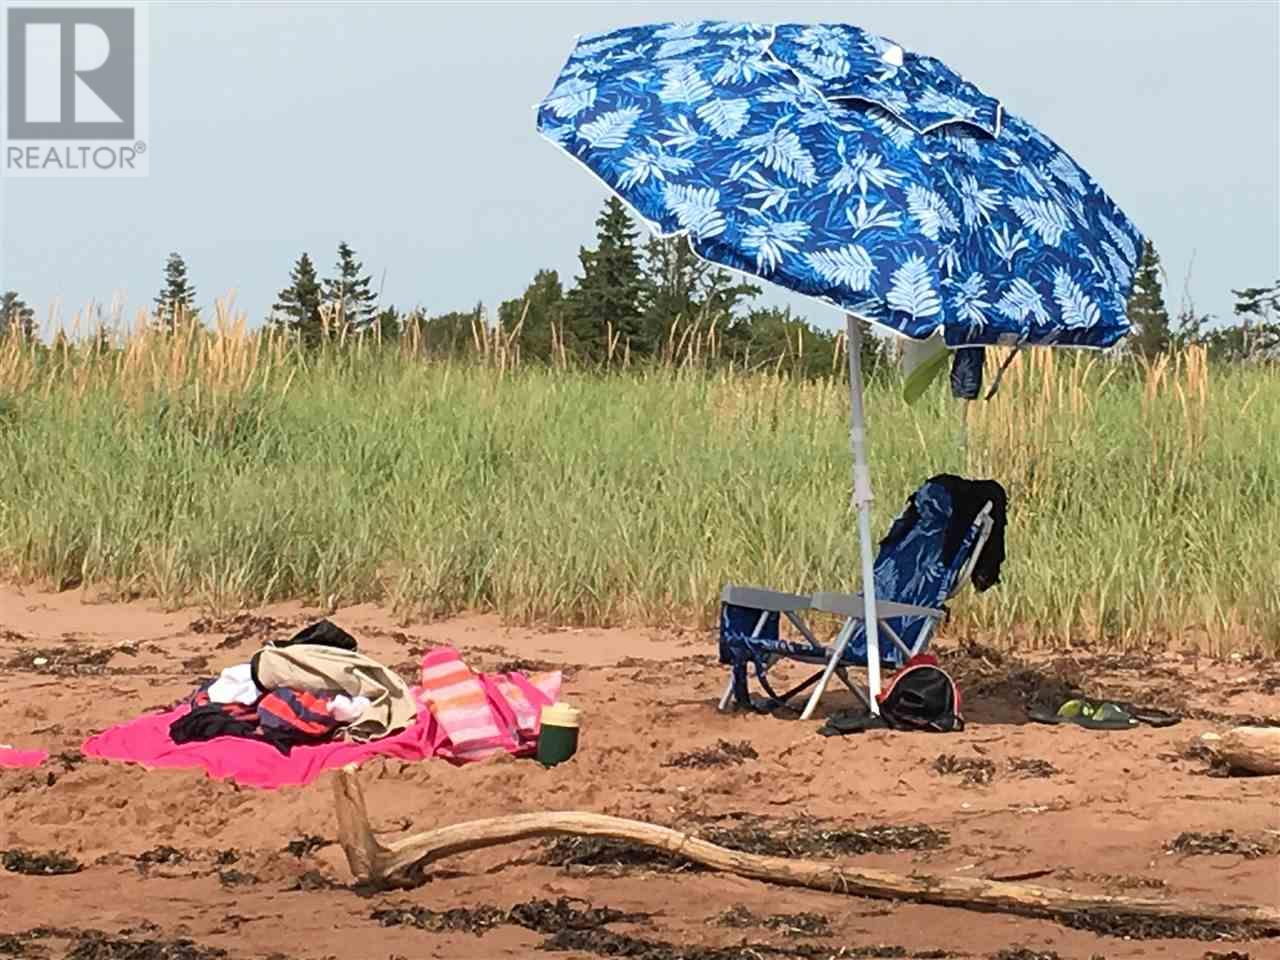 Gordon Point Estates LnGordon Point Estates Ln, North Carleton, Prince Edward Island C0B1A0, ,Vacant Land,For Sale,Gordon Point Estates Ln,201927652